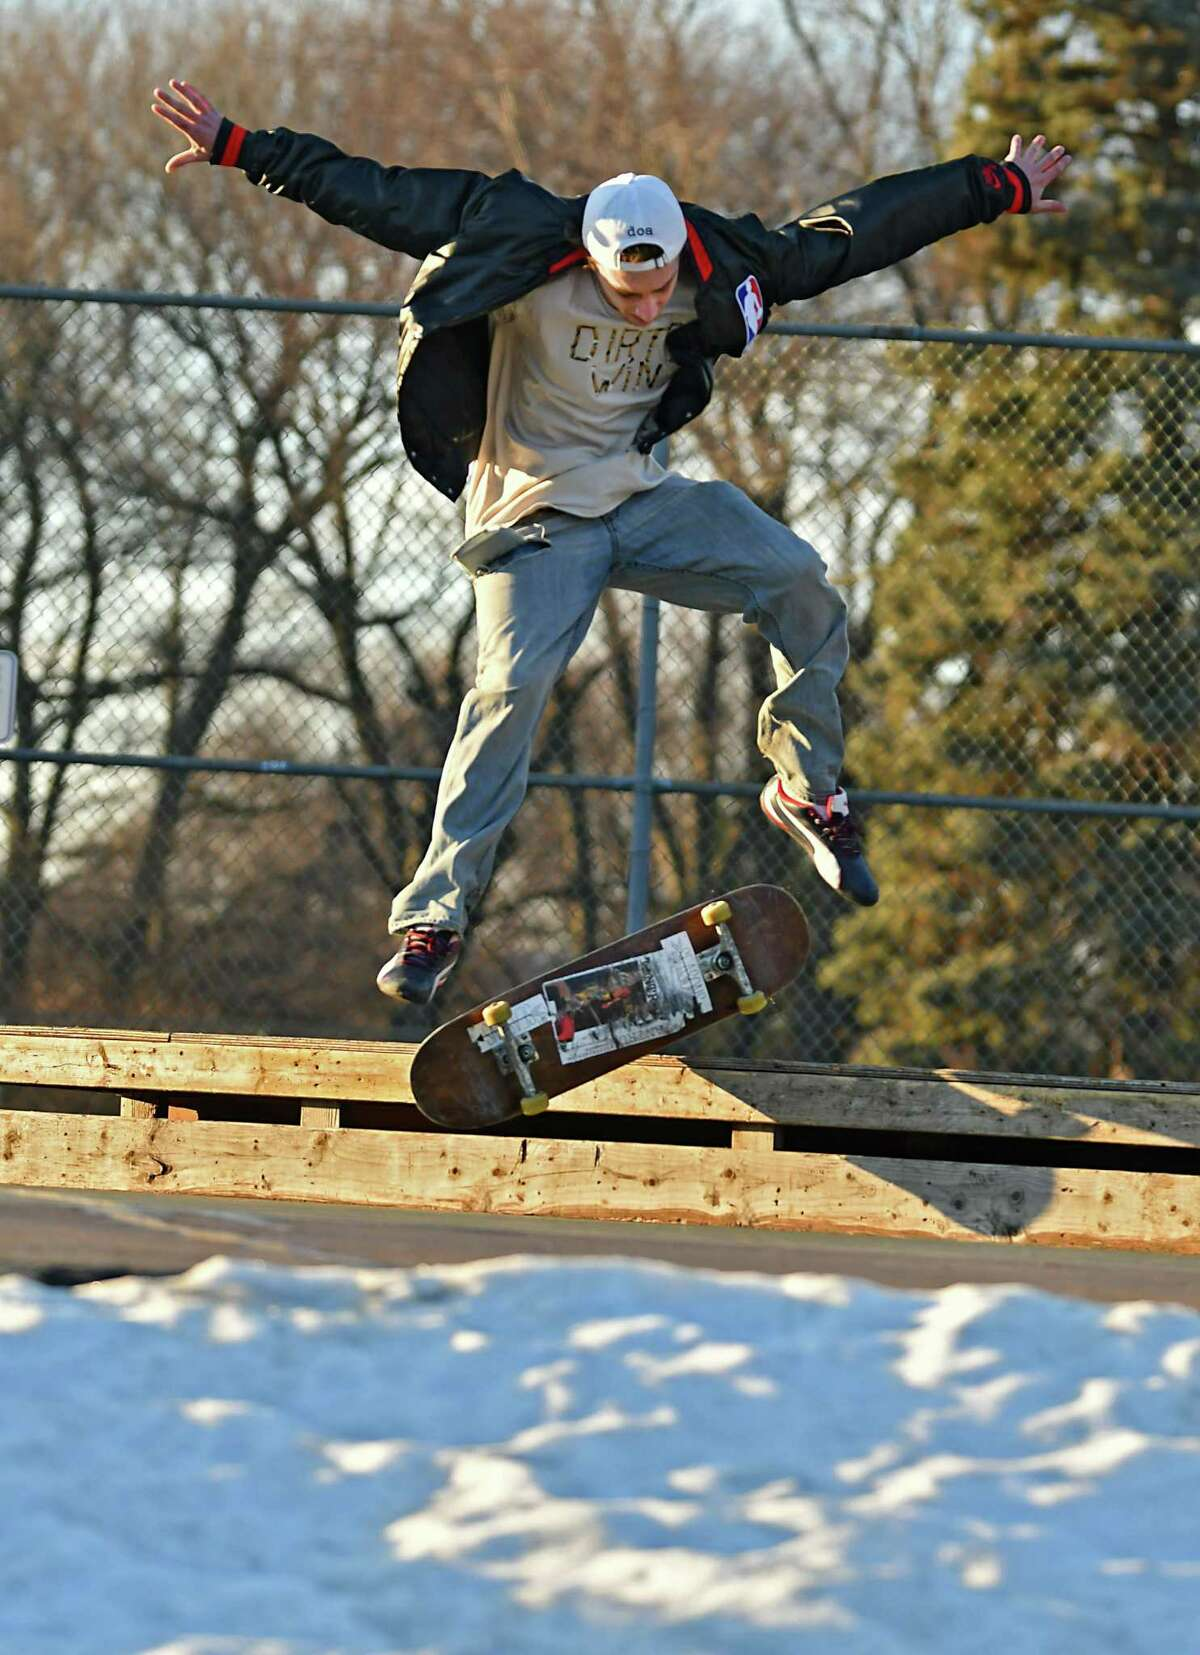 With snow still on parts of the skate park Andrew Grabowski of Albany finds a way to catch air on his skateboard in Washington Park during warm temperatures on Monday, Feb. 4, 2019 in Albany, N.Y. (Lori Van Buren/Times Union)